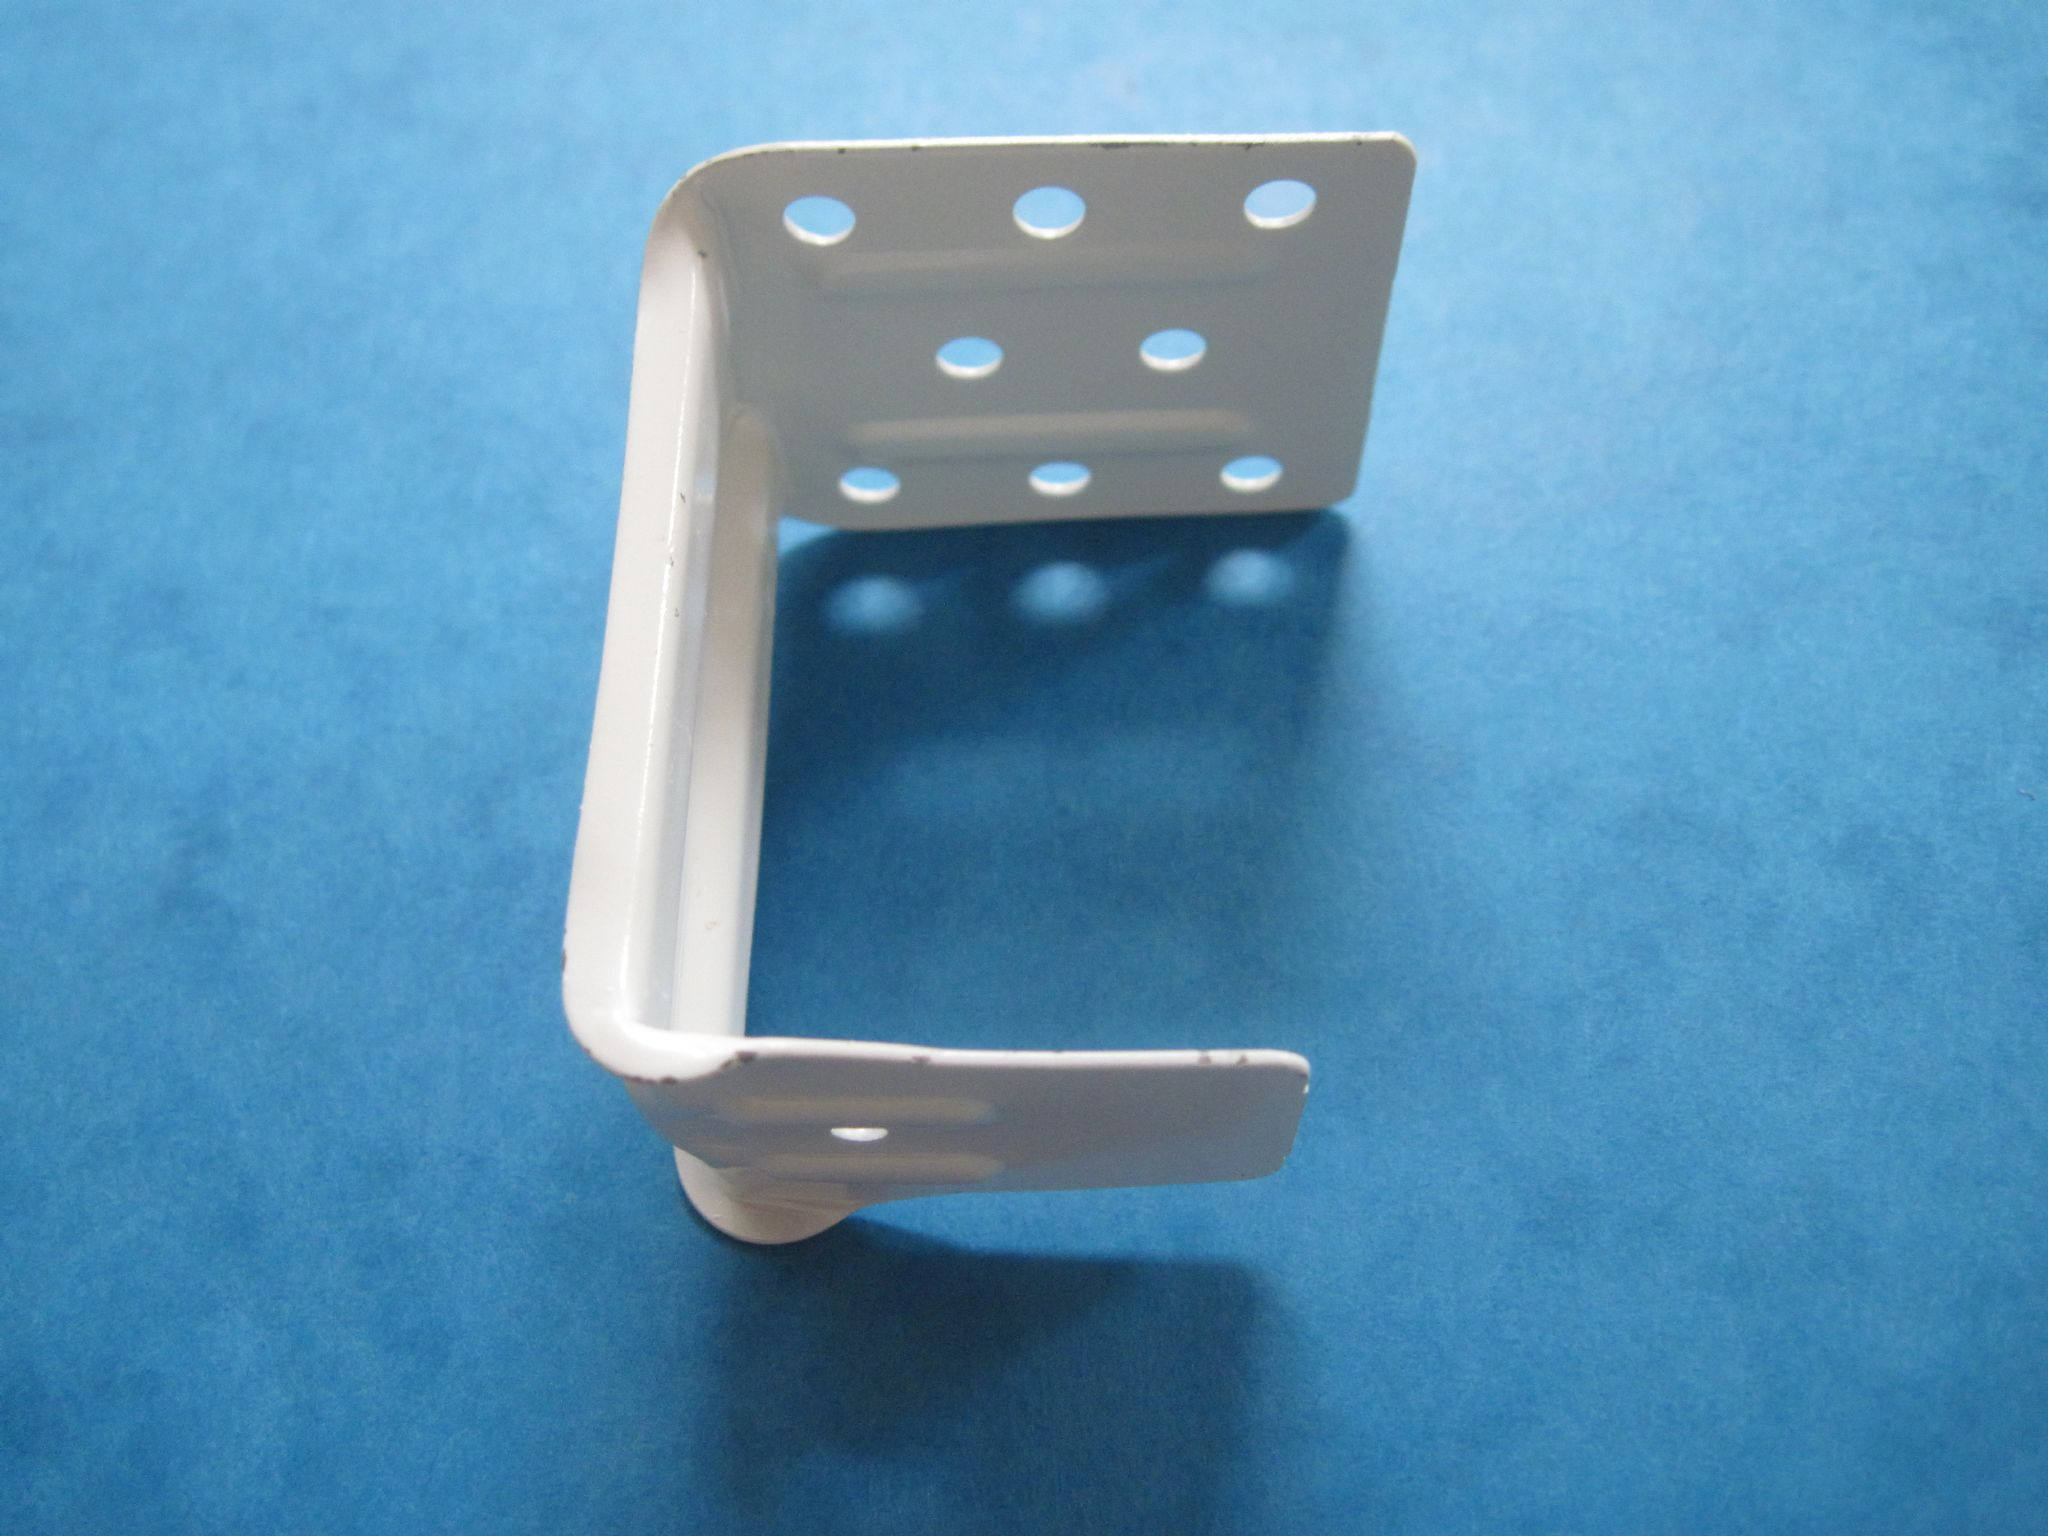 Venetian Blind Center Support Bracket For Approx 53mm Top Box